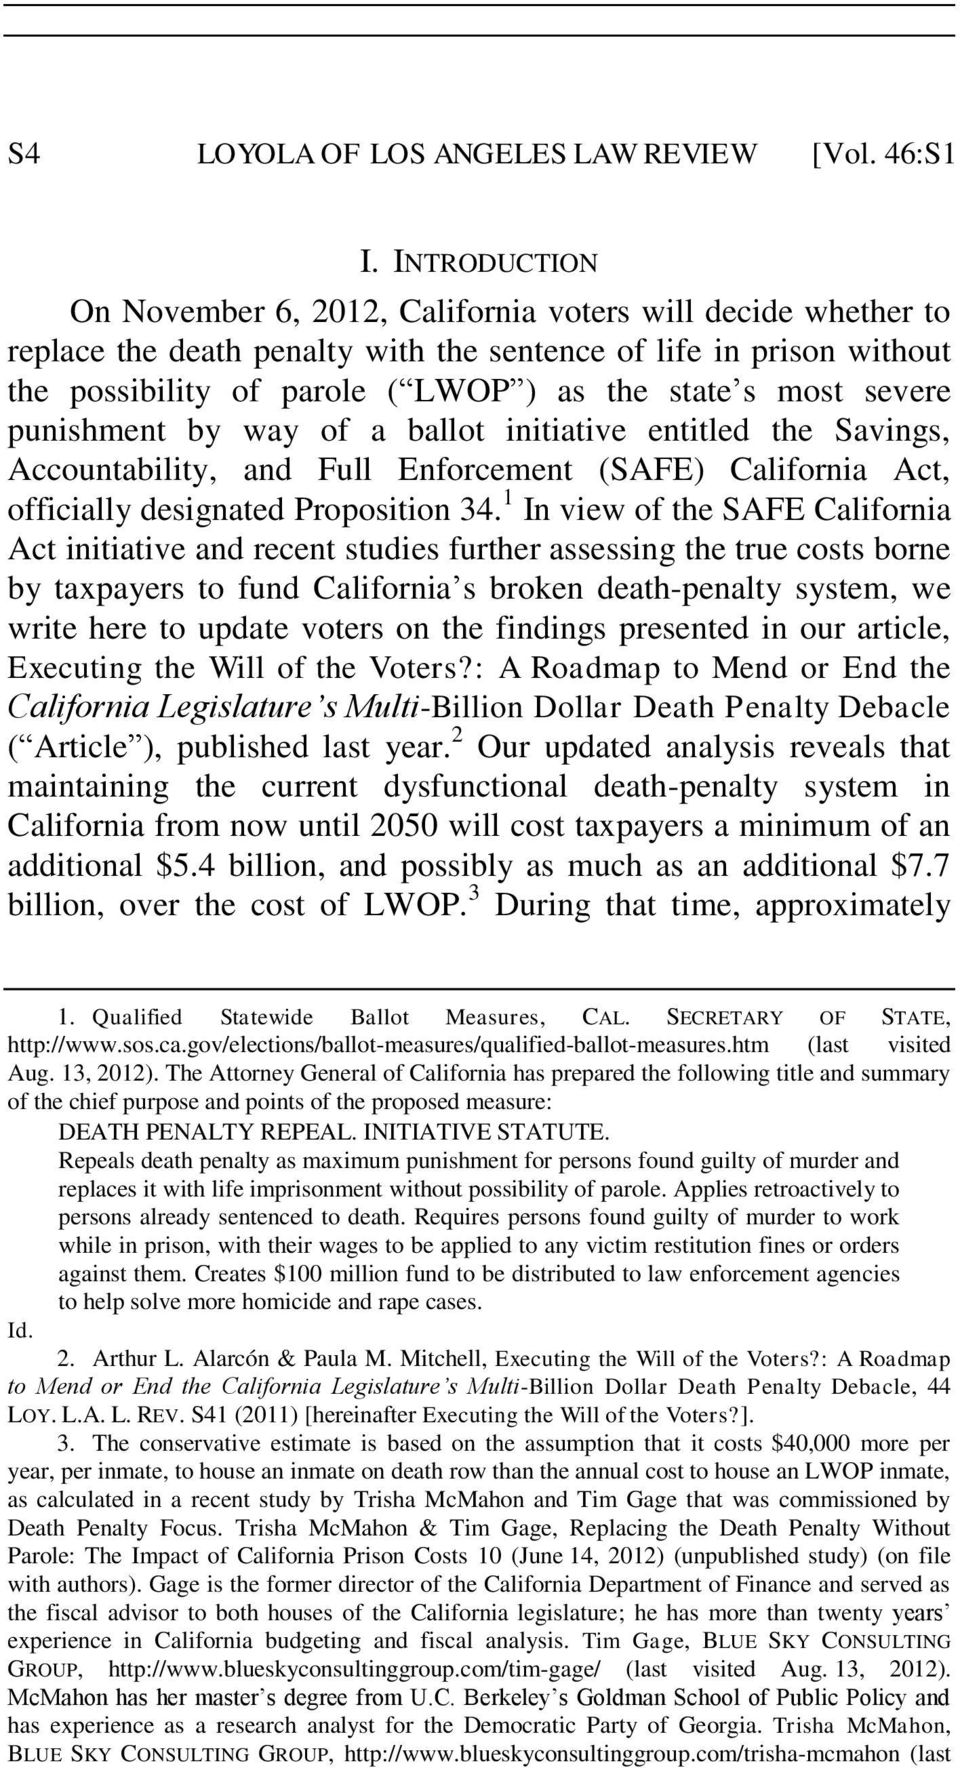 severe punishment by way of a ballot initiative entitled the Savings, Accountability, and Full Enforcement (SAFE) California Act, officially designated Proposition 34.